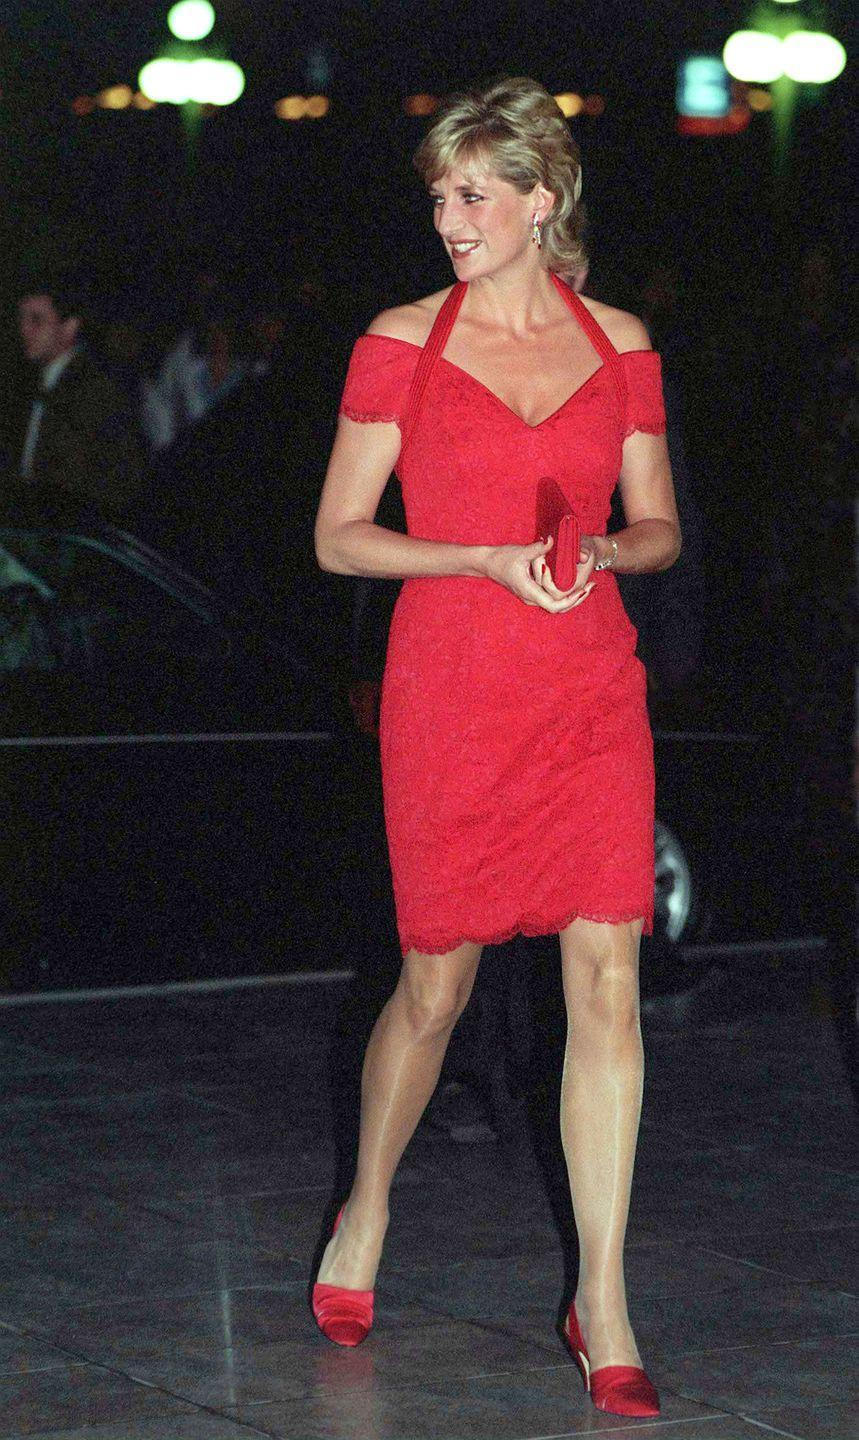 <p>In a red dress and heels holding a matching clutch while out for dinner in Argentina. </p>